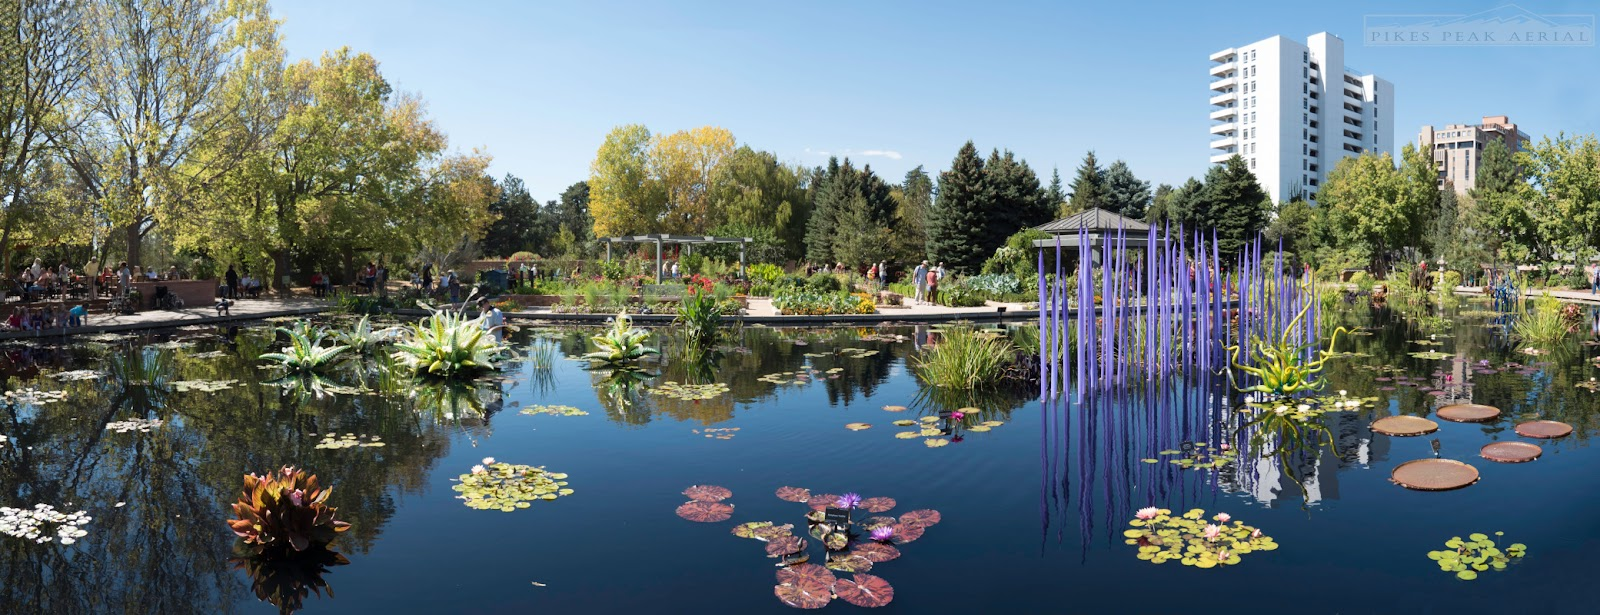 Date ideas in colorado her campus for Botanic gardens denver free days